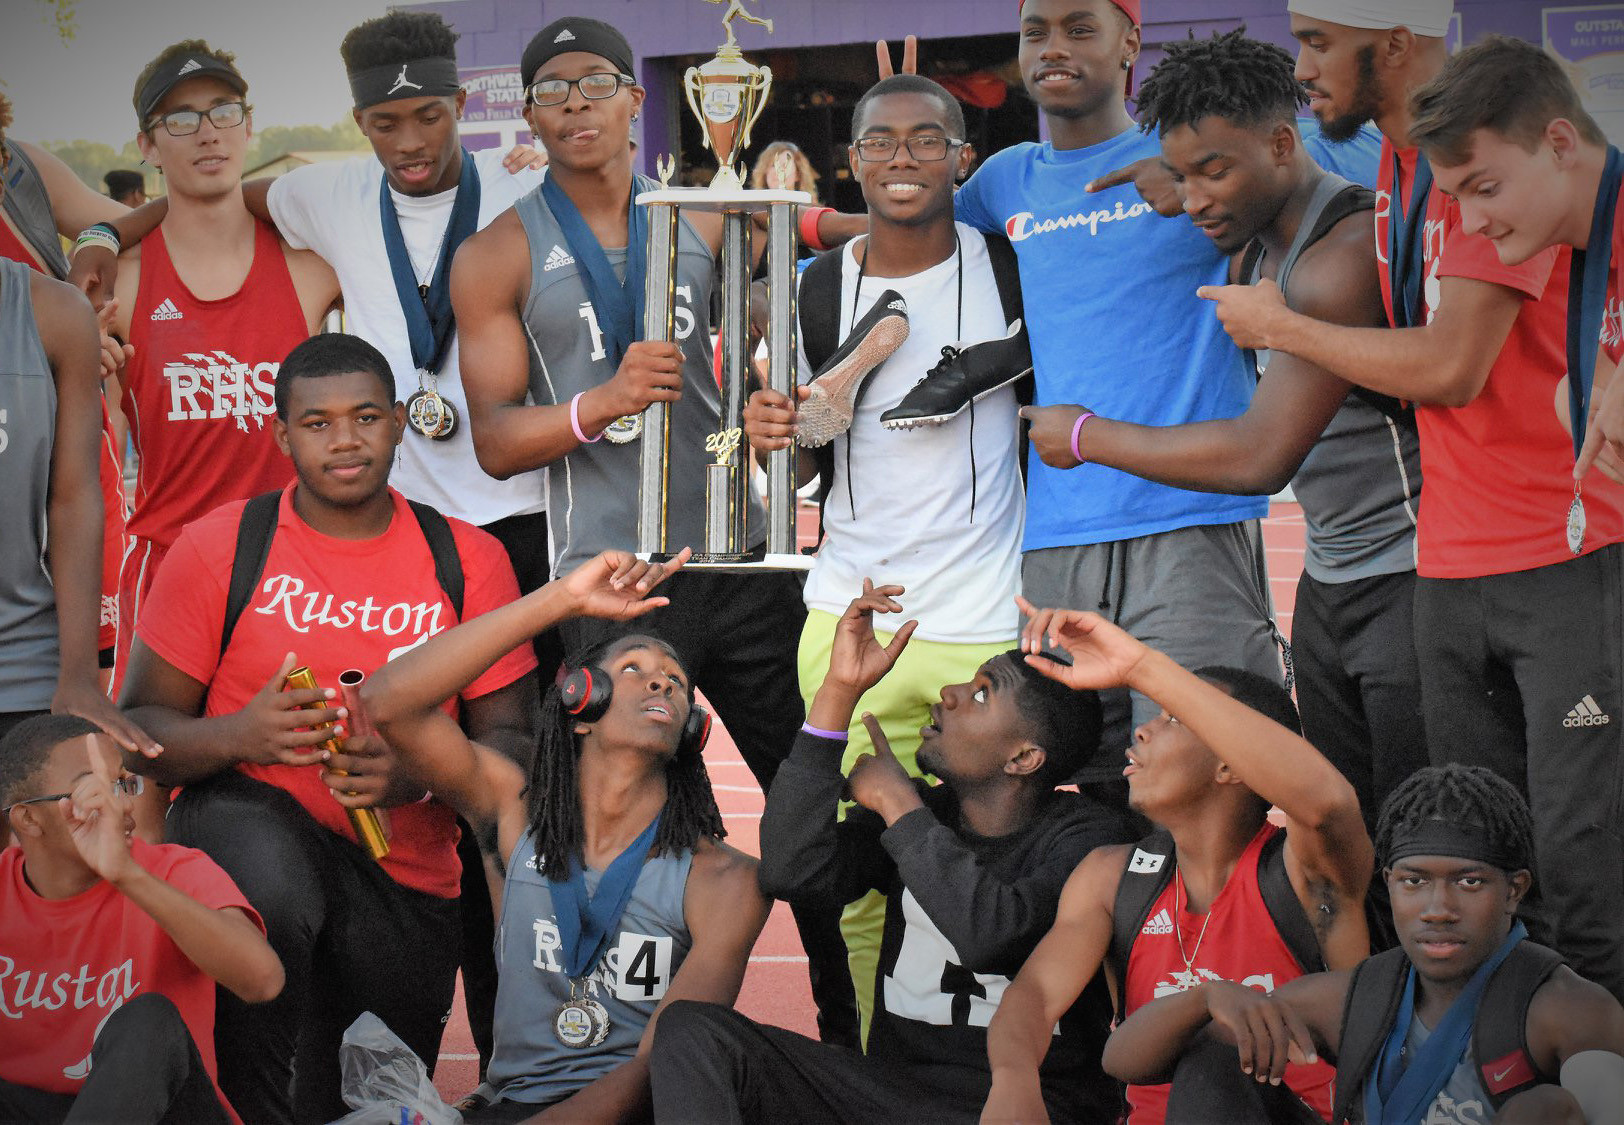 Cam Murphy and the RHS track and field team celebrating their regional meet victory just days after the April 25 tornado claimed the lives of Murphy's mother, Kendra Butler, and brother, Remington Butler.